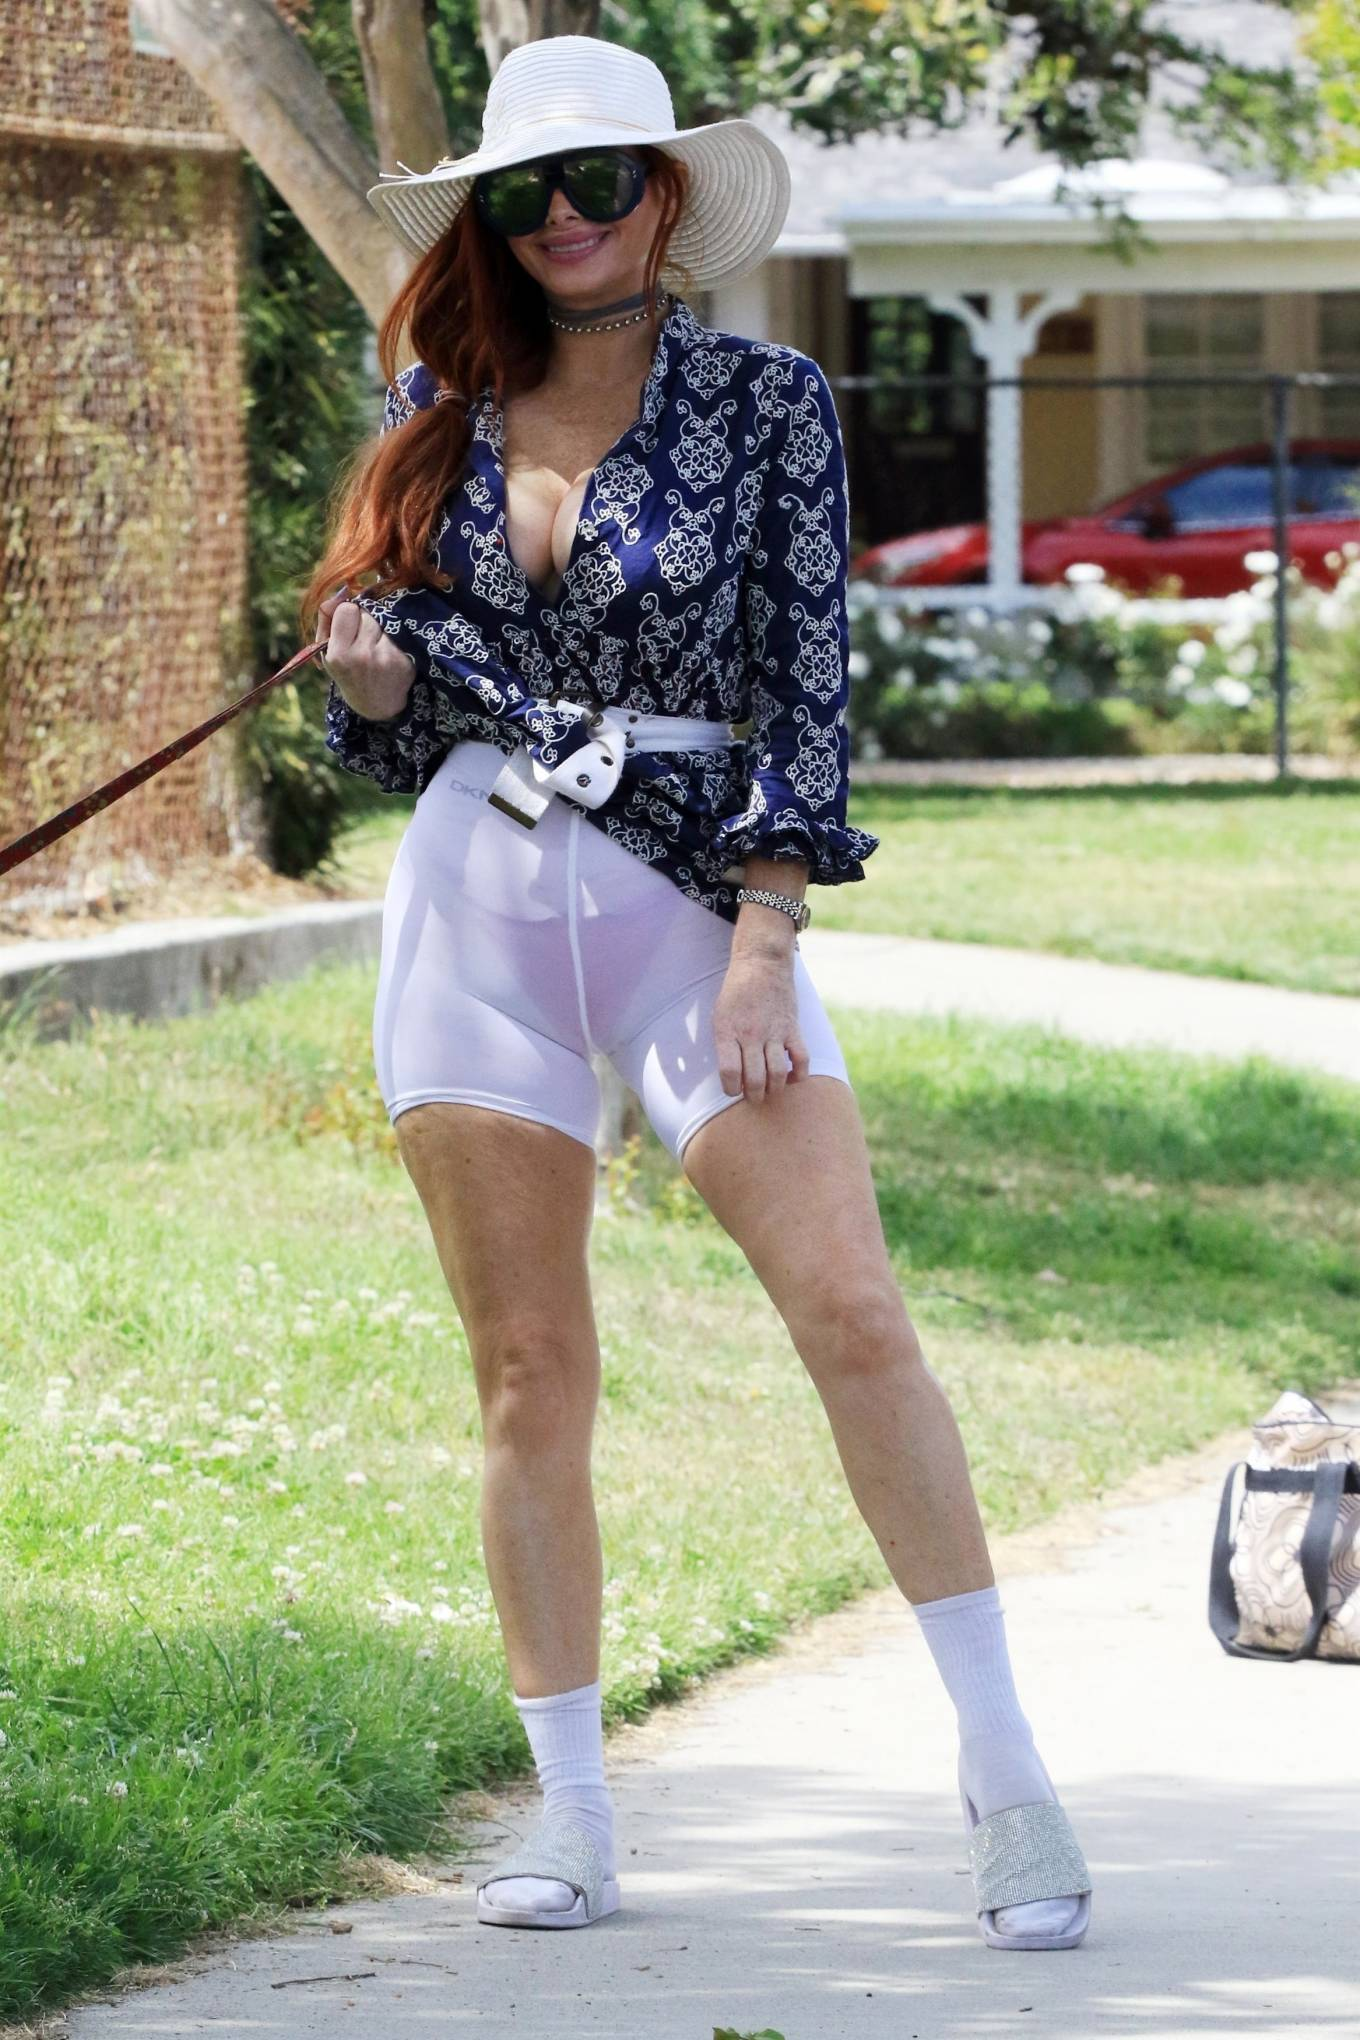 Phoebe Price - Posing at a park in Los Angeles